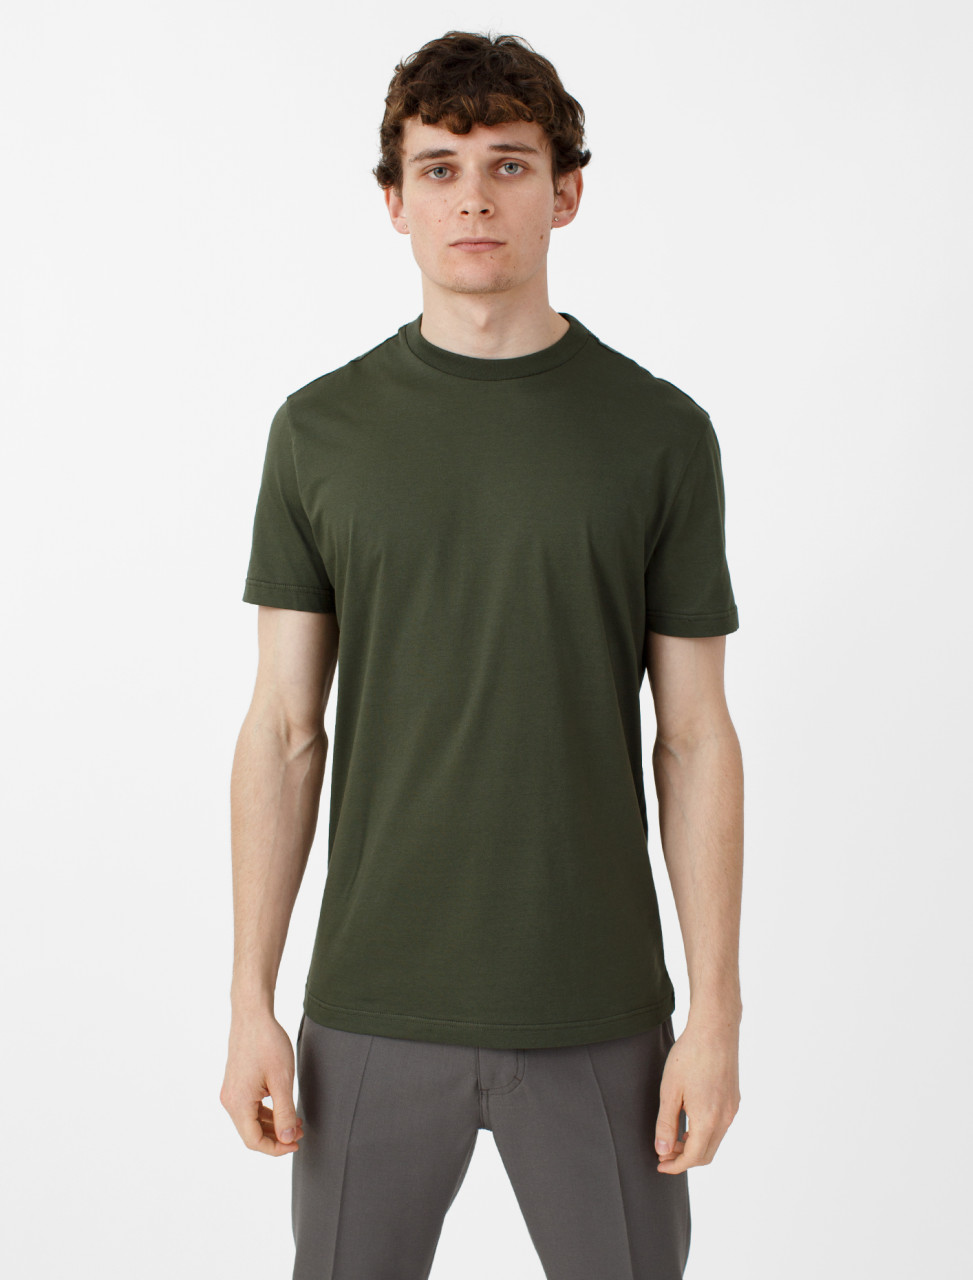 3 Pack Jersey T-Shirt in Militar, Lichen and Olive